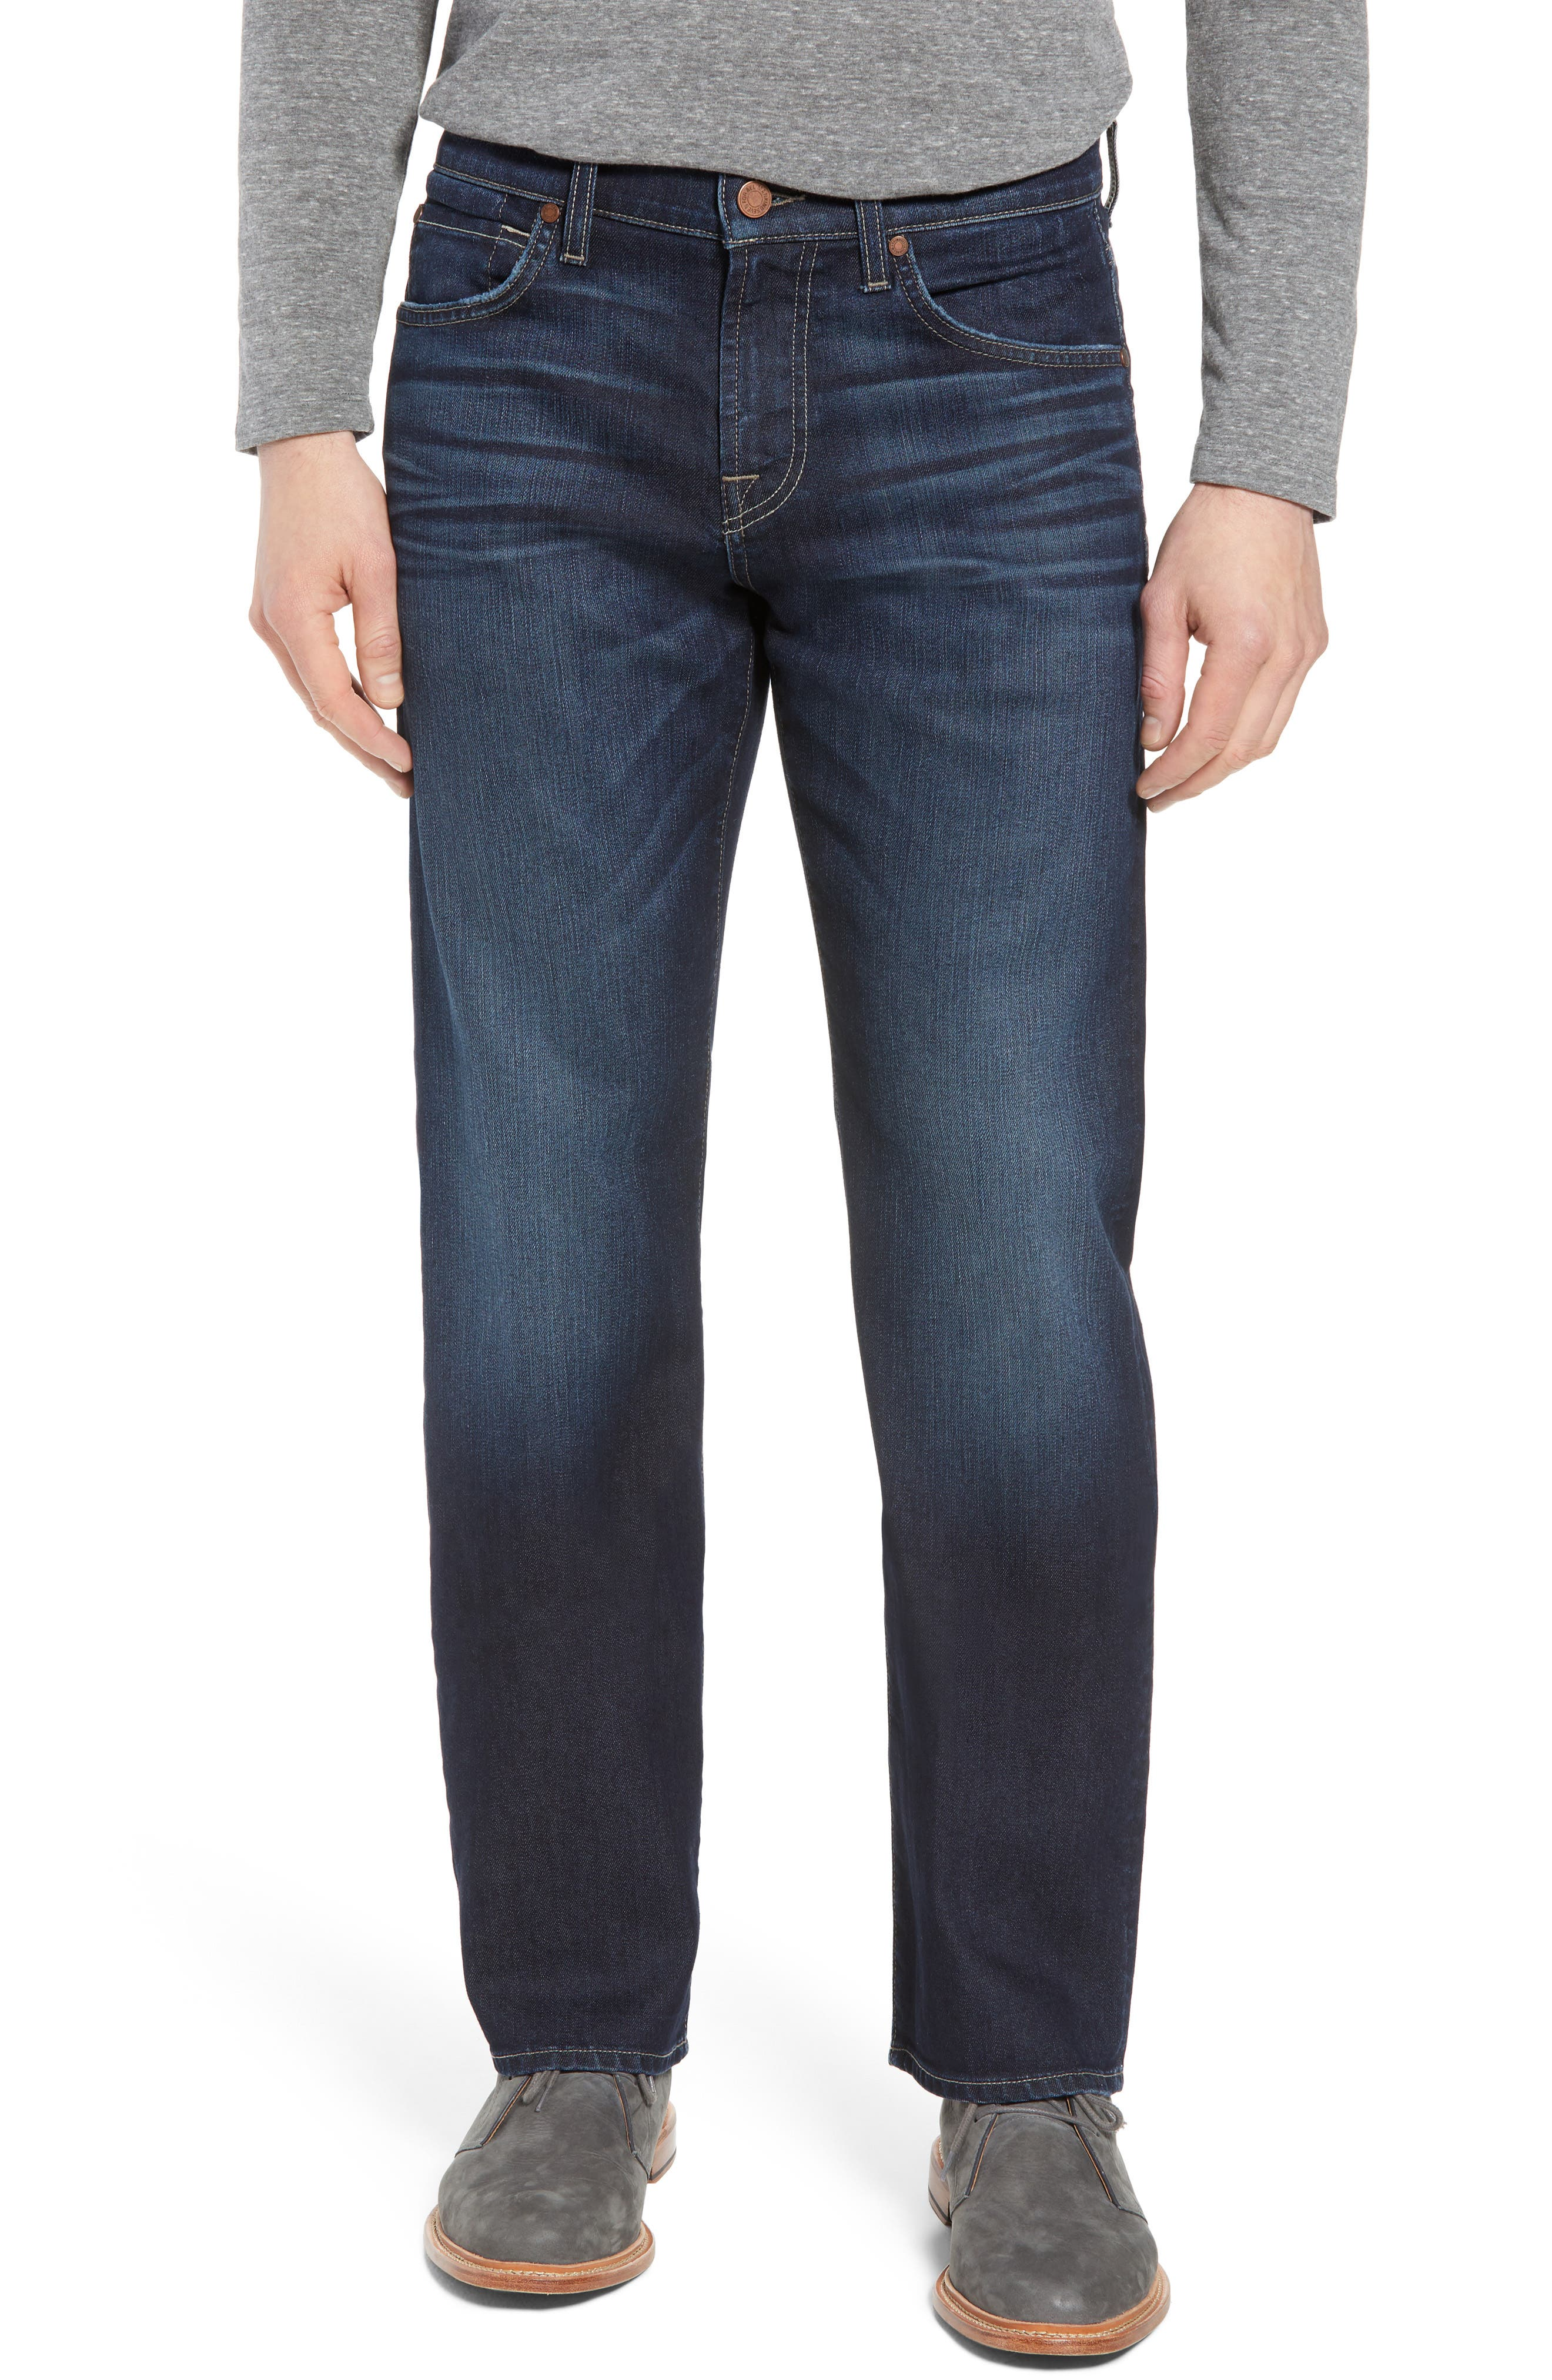 Airweft Austyn Relaxed Straight Leg Jeans,                         Main,                         color, Concierge